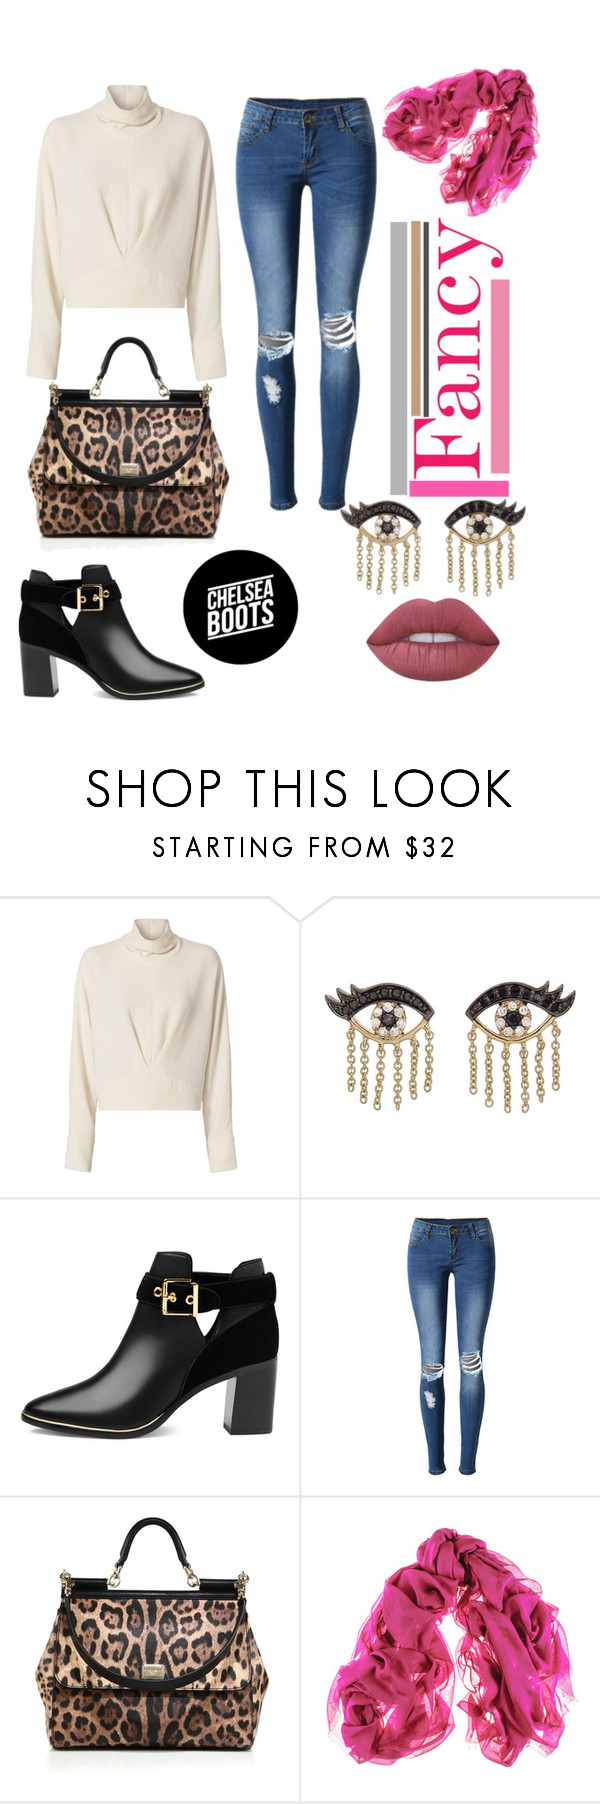 """Fancy"" by belen-cool-look ❤ liked on Polyvore featuring IRO, Sydney Evan, Ted Baker, WithChic, Dolce&Gabbana, Black and Lime Crime"